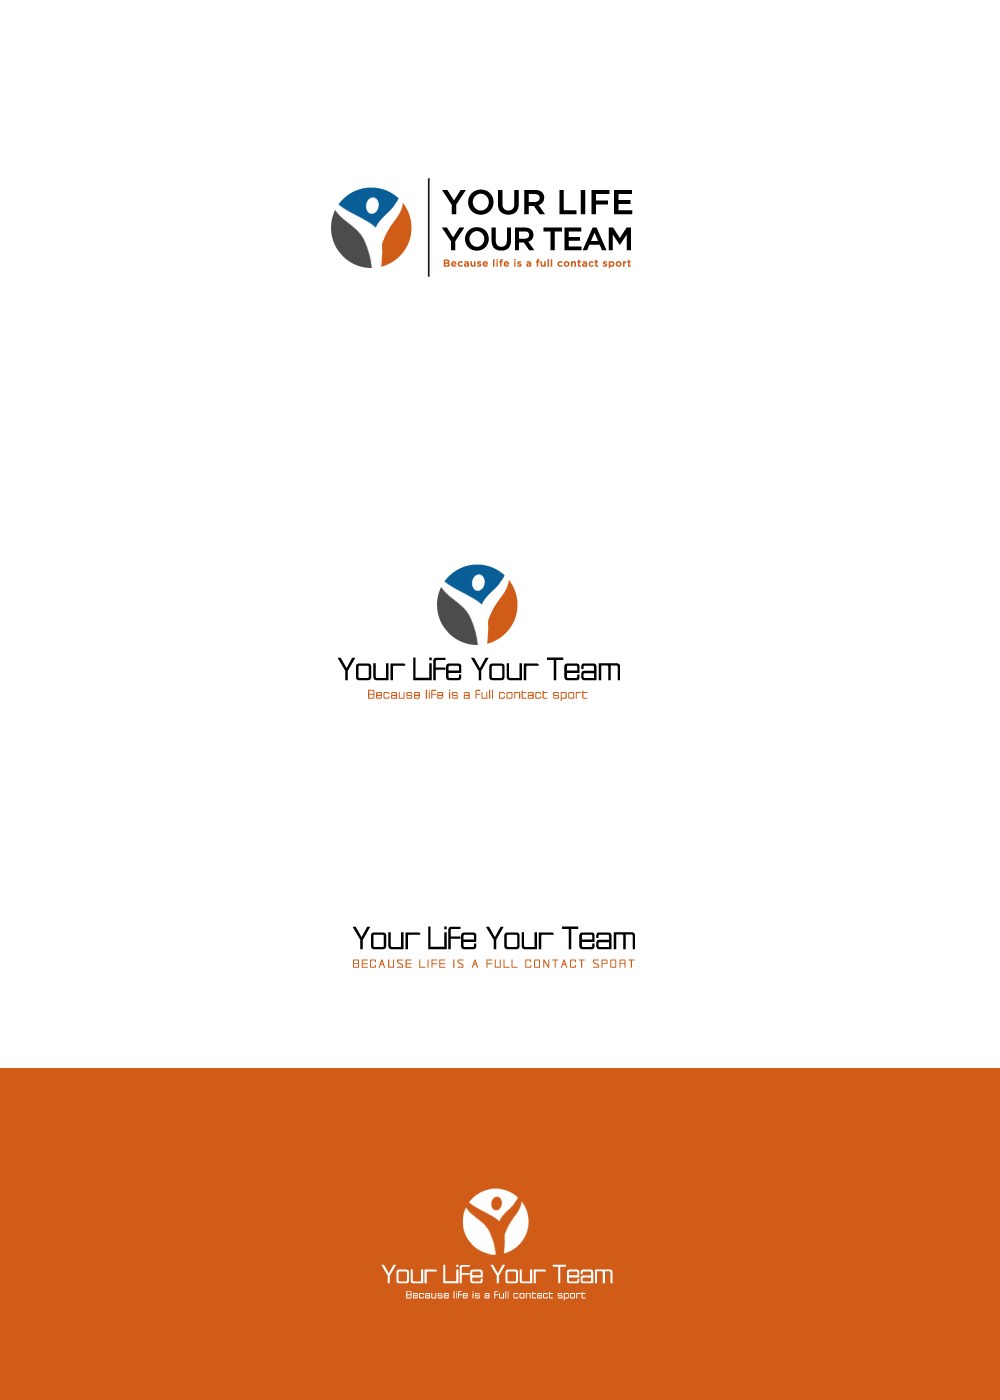 80c4ff4b1 Playful, Bold, Leadership Logo Design for Your Life Your Team (maybe ...